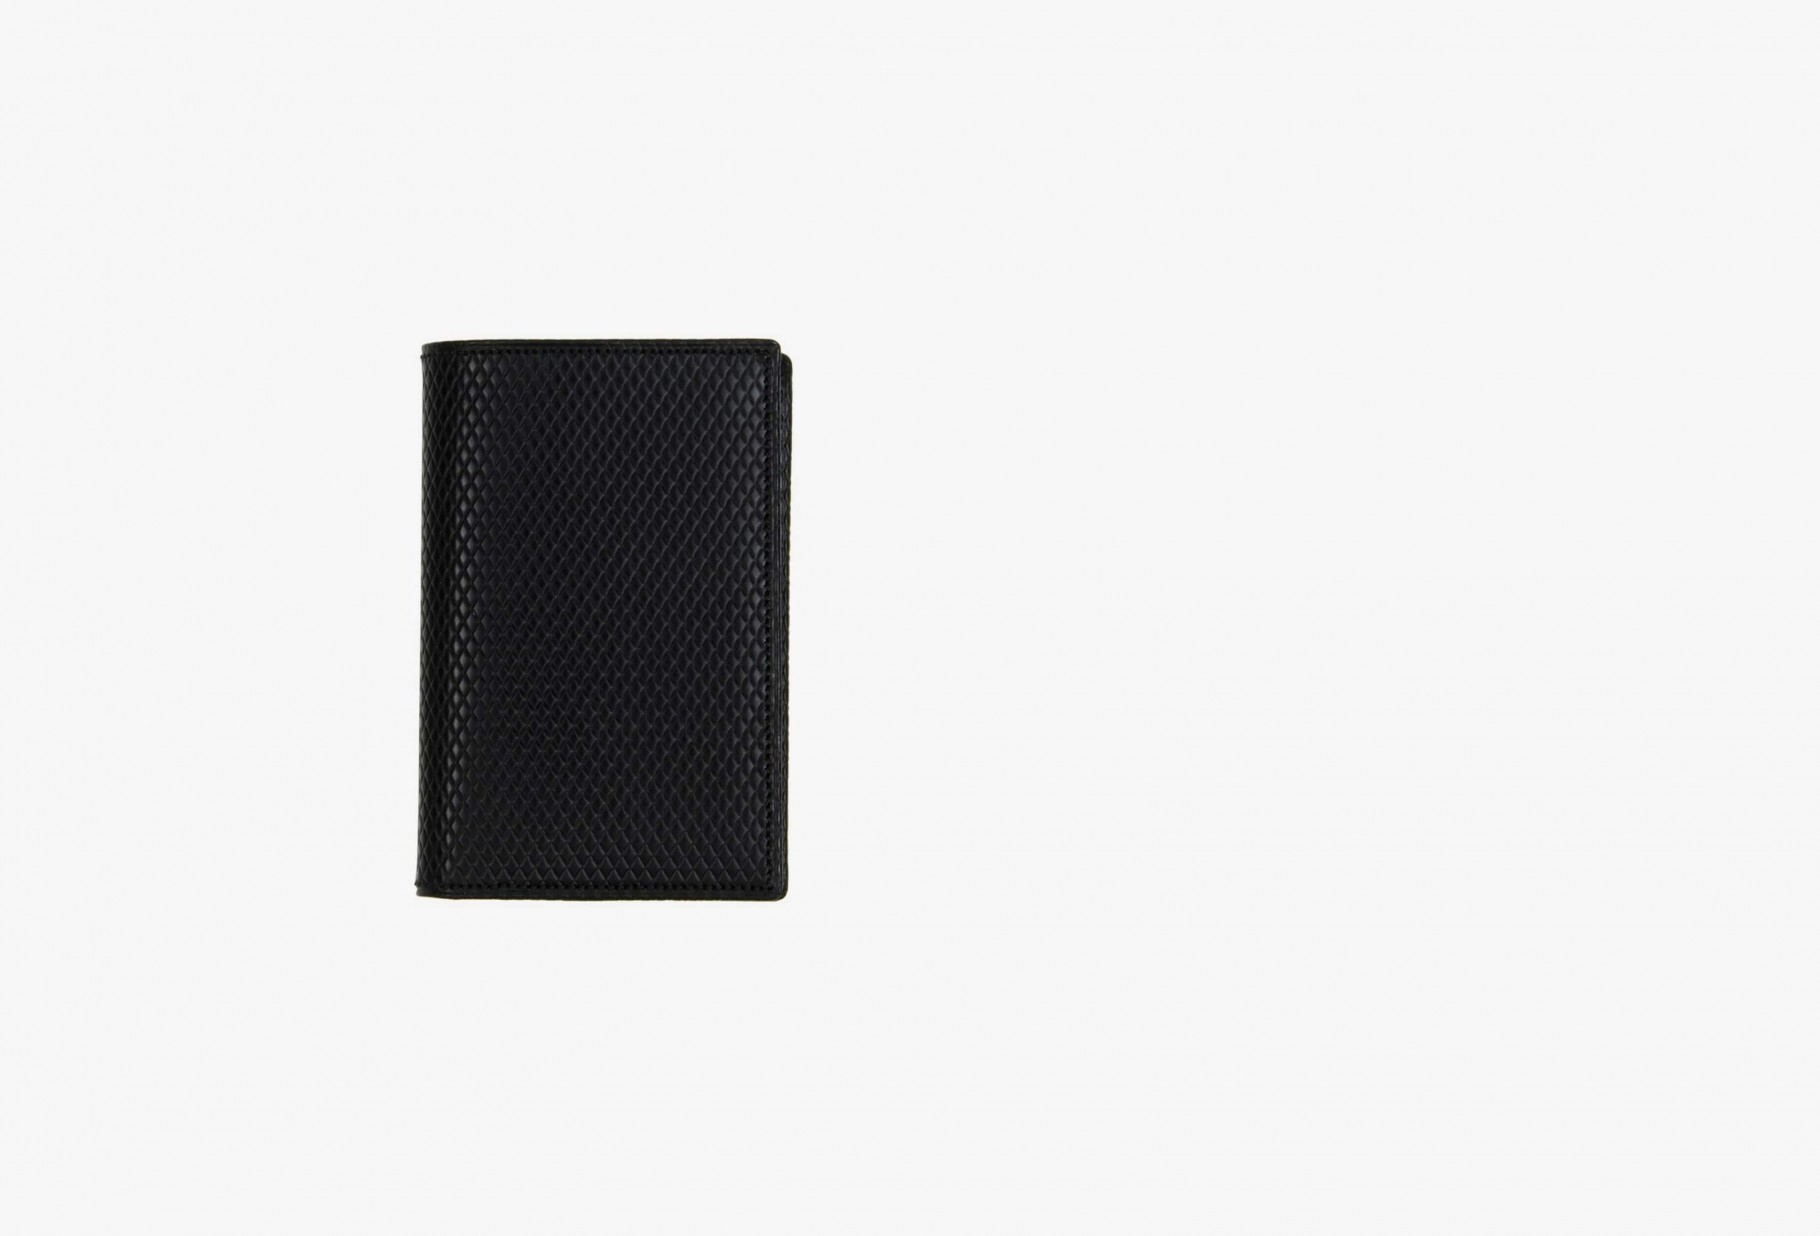 CDG WALLETS / Cdg luxury group sa6400lg Black